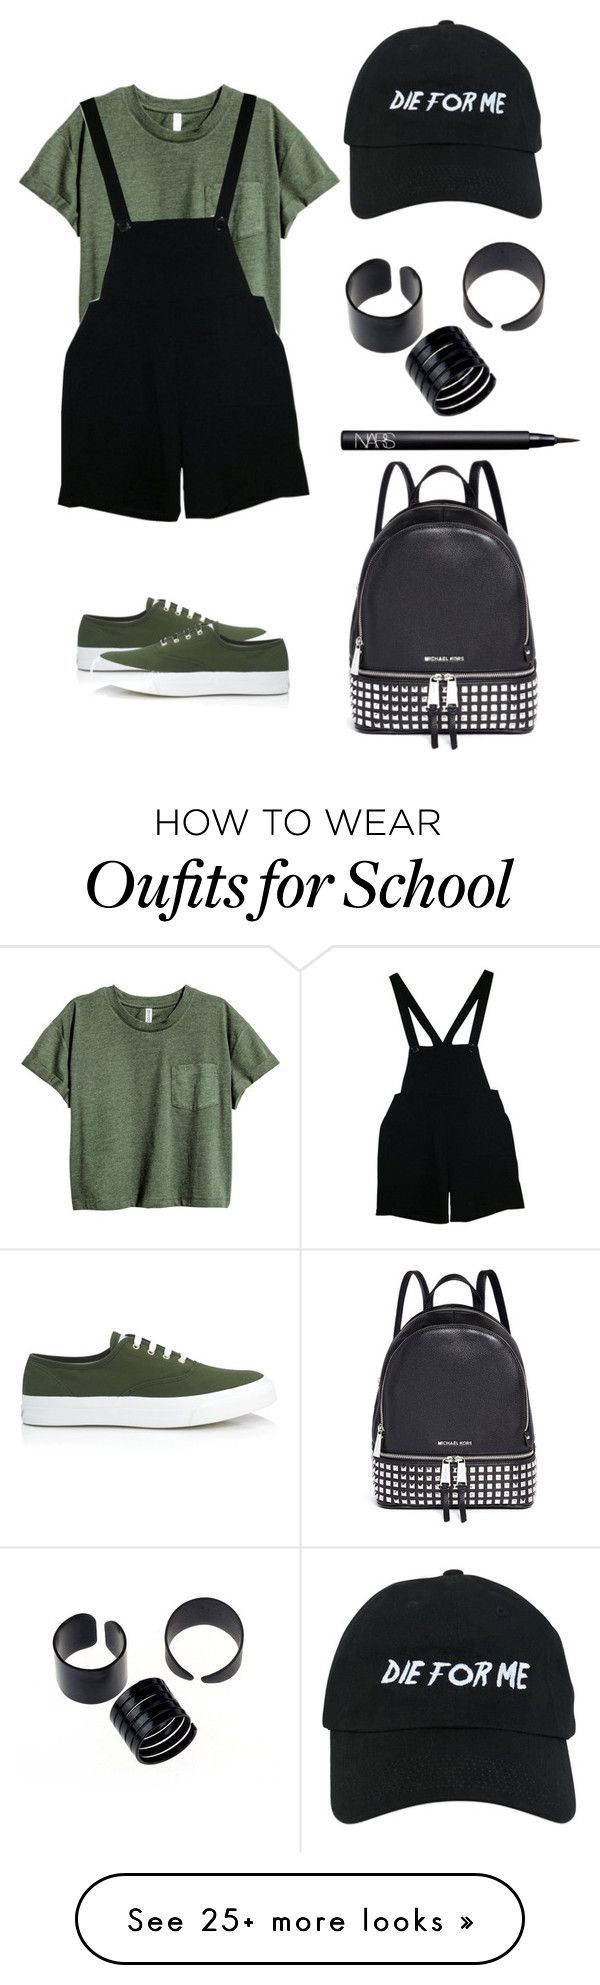 Back to school 2 by bridie-oloughlin on Polyvore featuring American Apparel, Maison Kitsuné, Nasaseasons, NARS Cosmetics and Michael Kors (Tech Style Women) #backtoschool